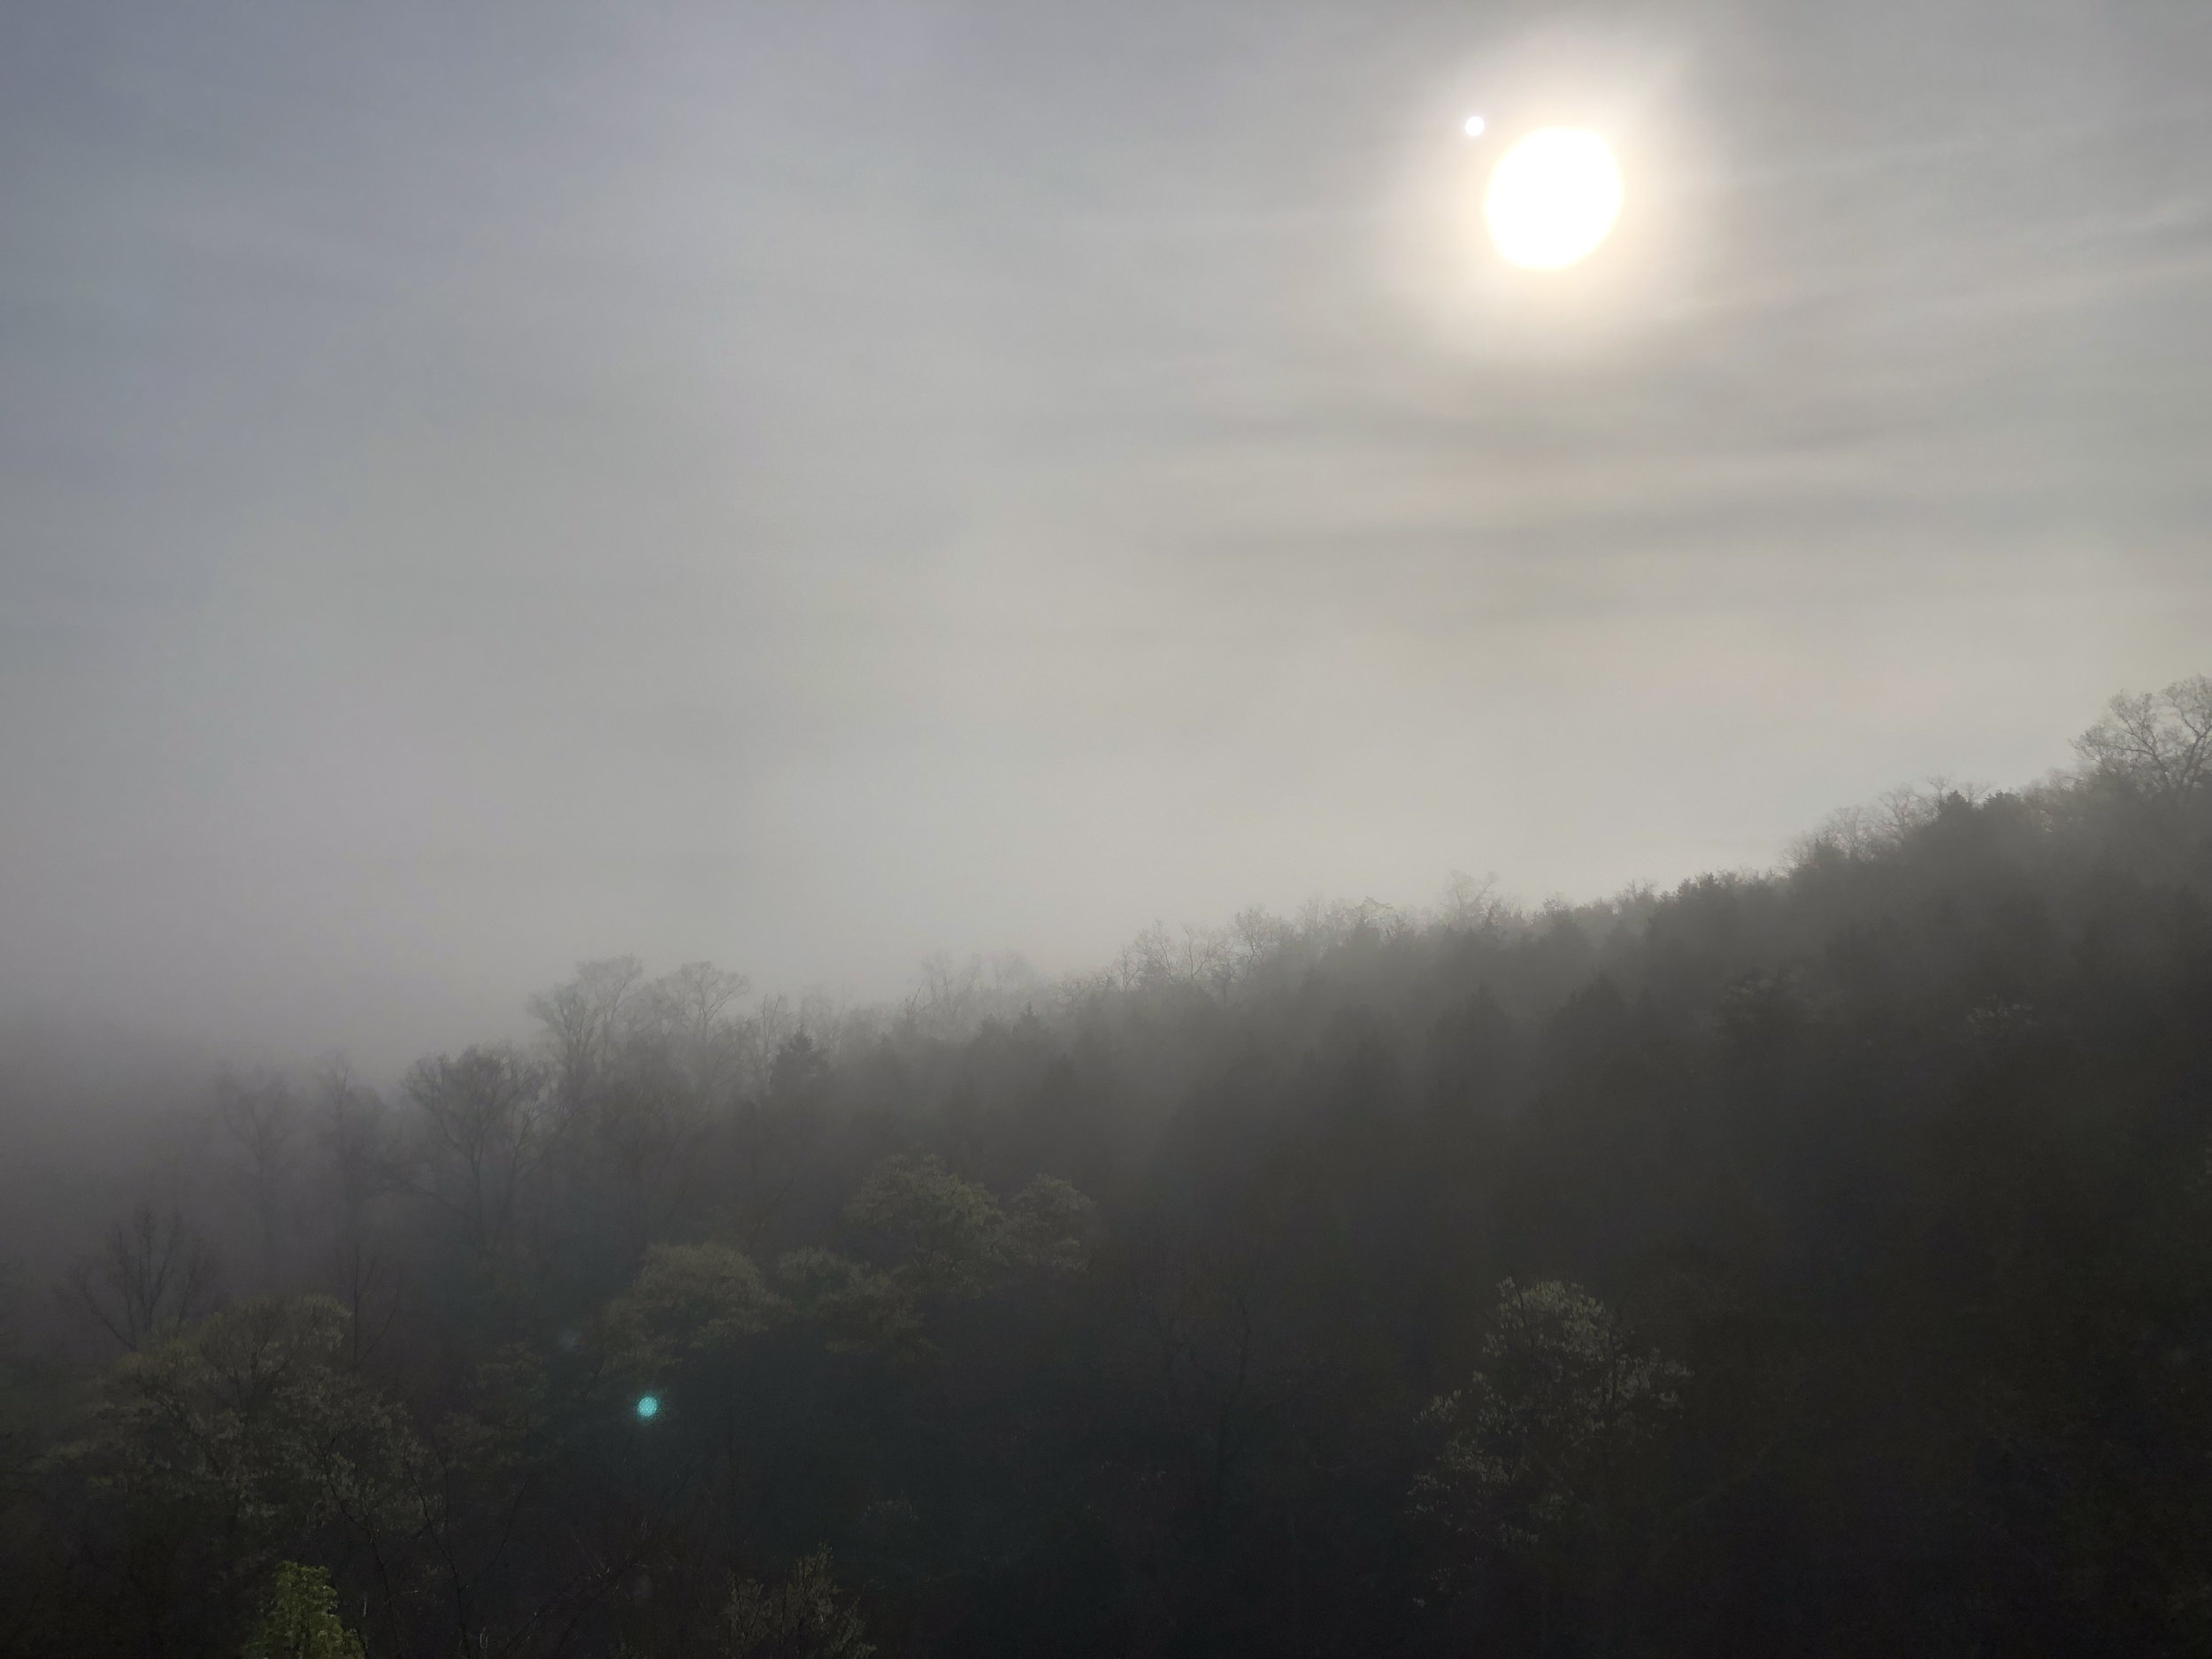 Fog in the Ozark Mountains